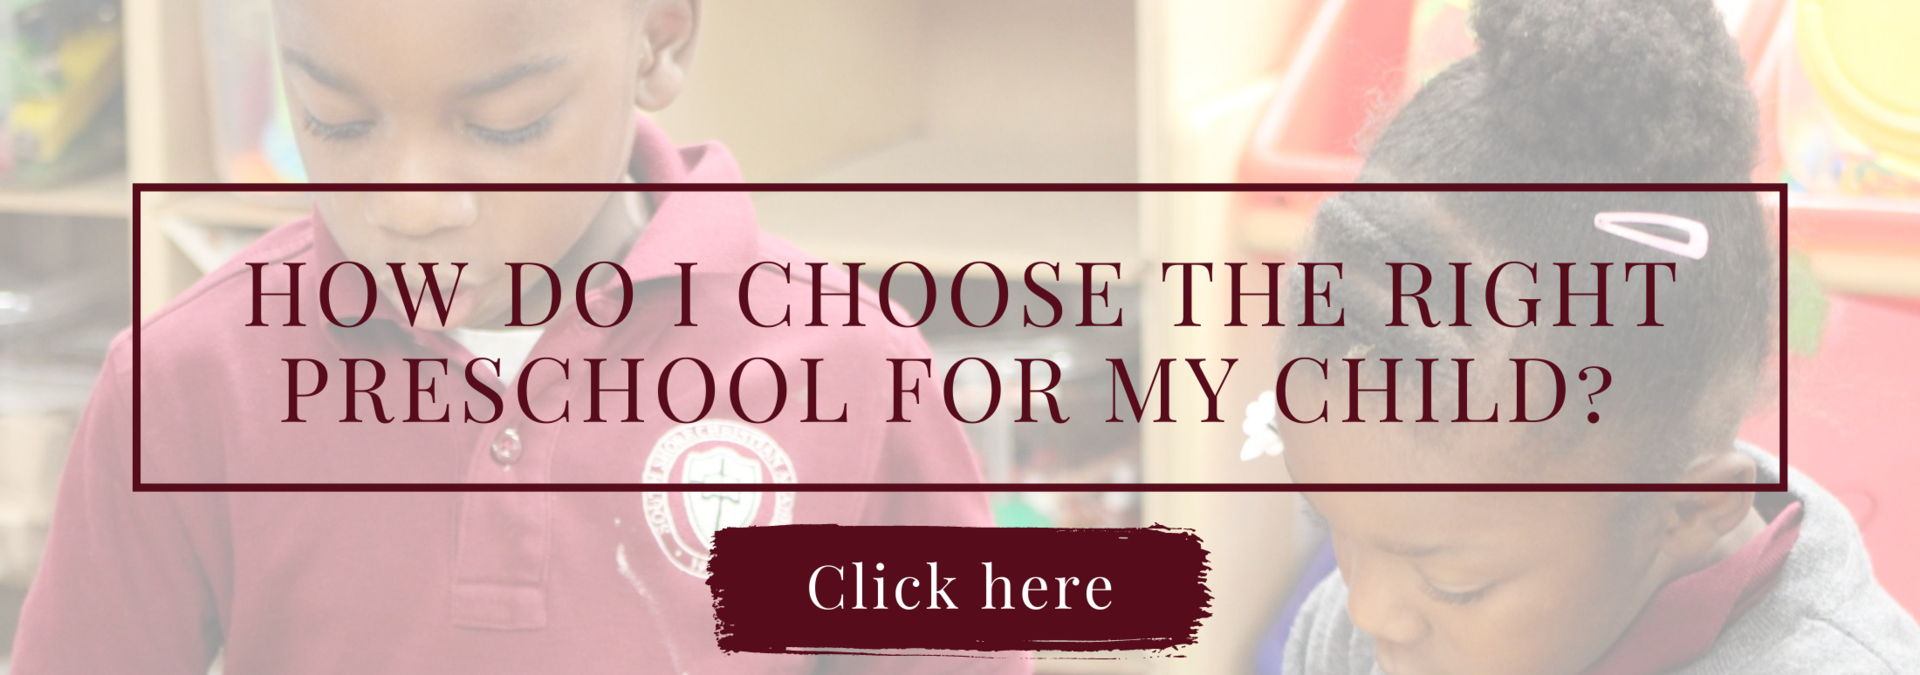 How do I choose the right preschool for my child?